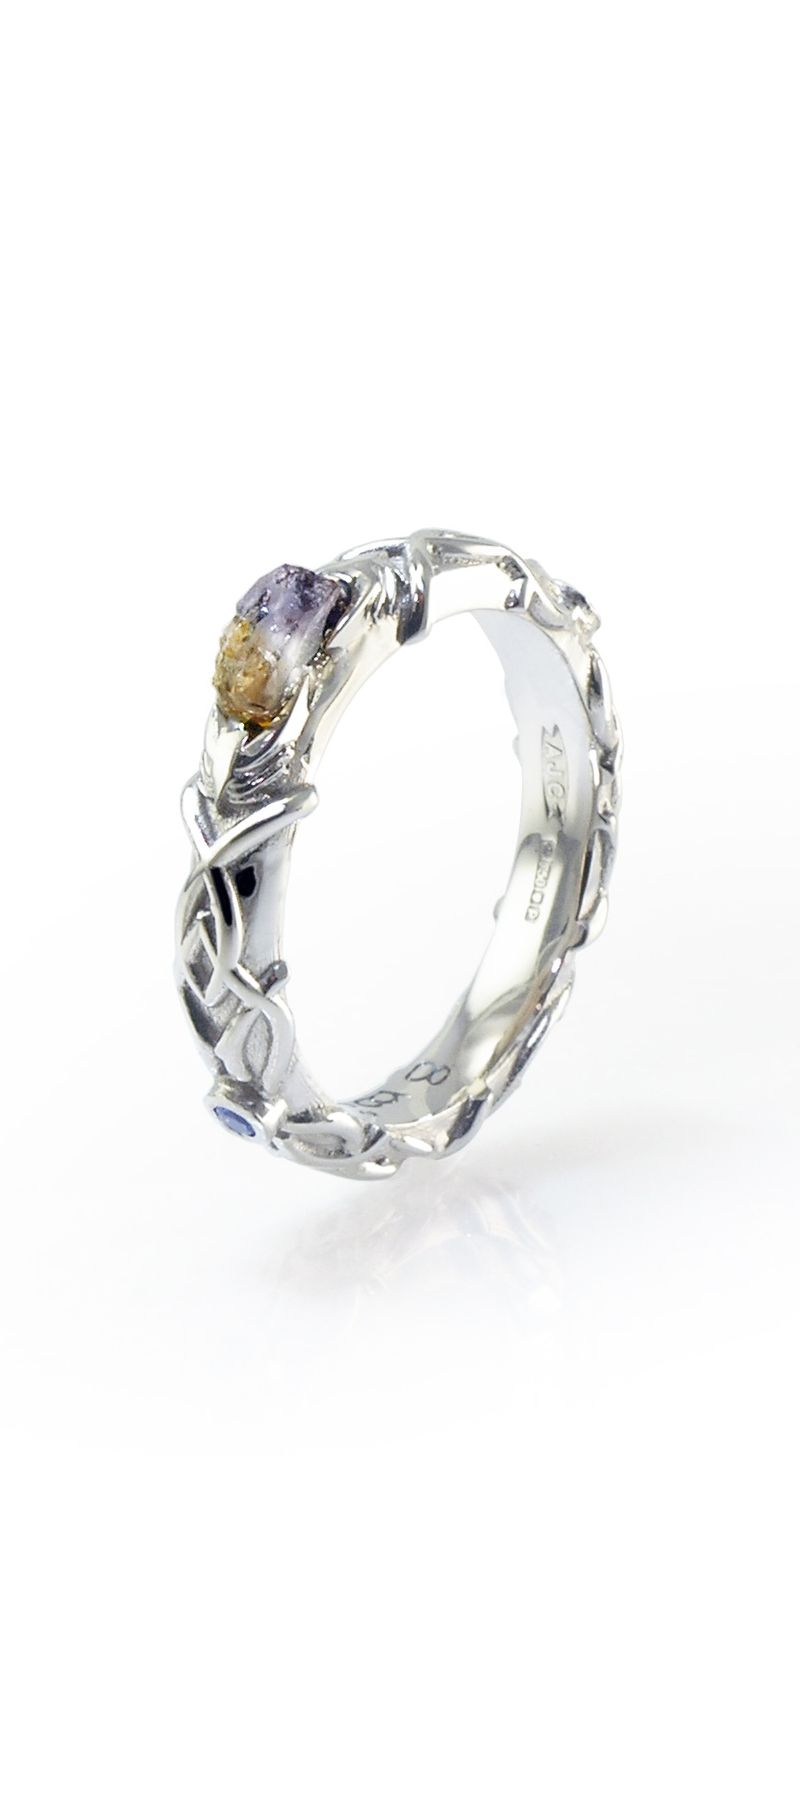 #fantasy #Wedding #rings Inspired by Lord of the Rings, Portal & Sci-fi series, 18ct White Gold bespoke wedding ring. www.advancedjc.com